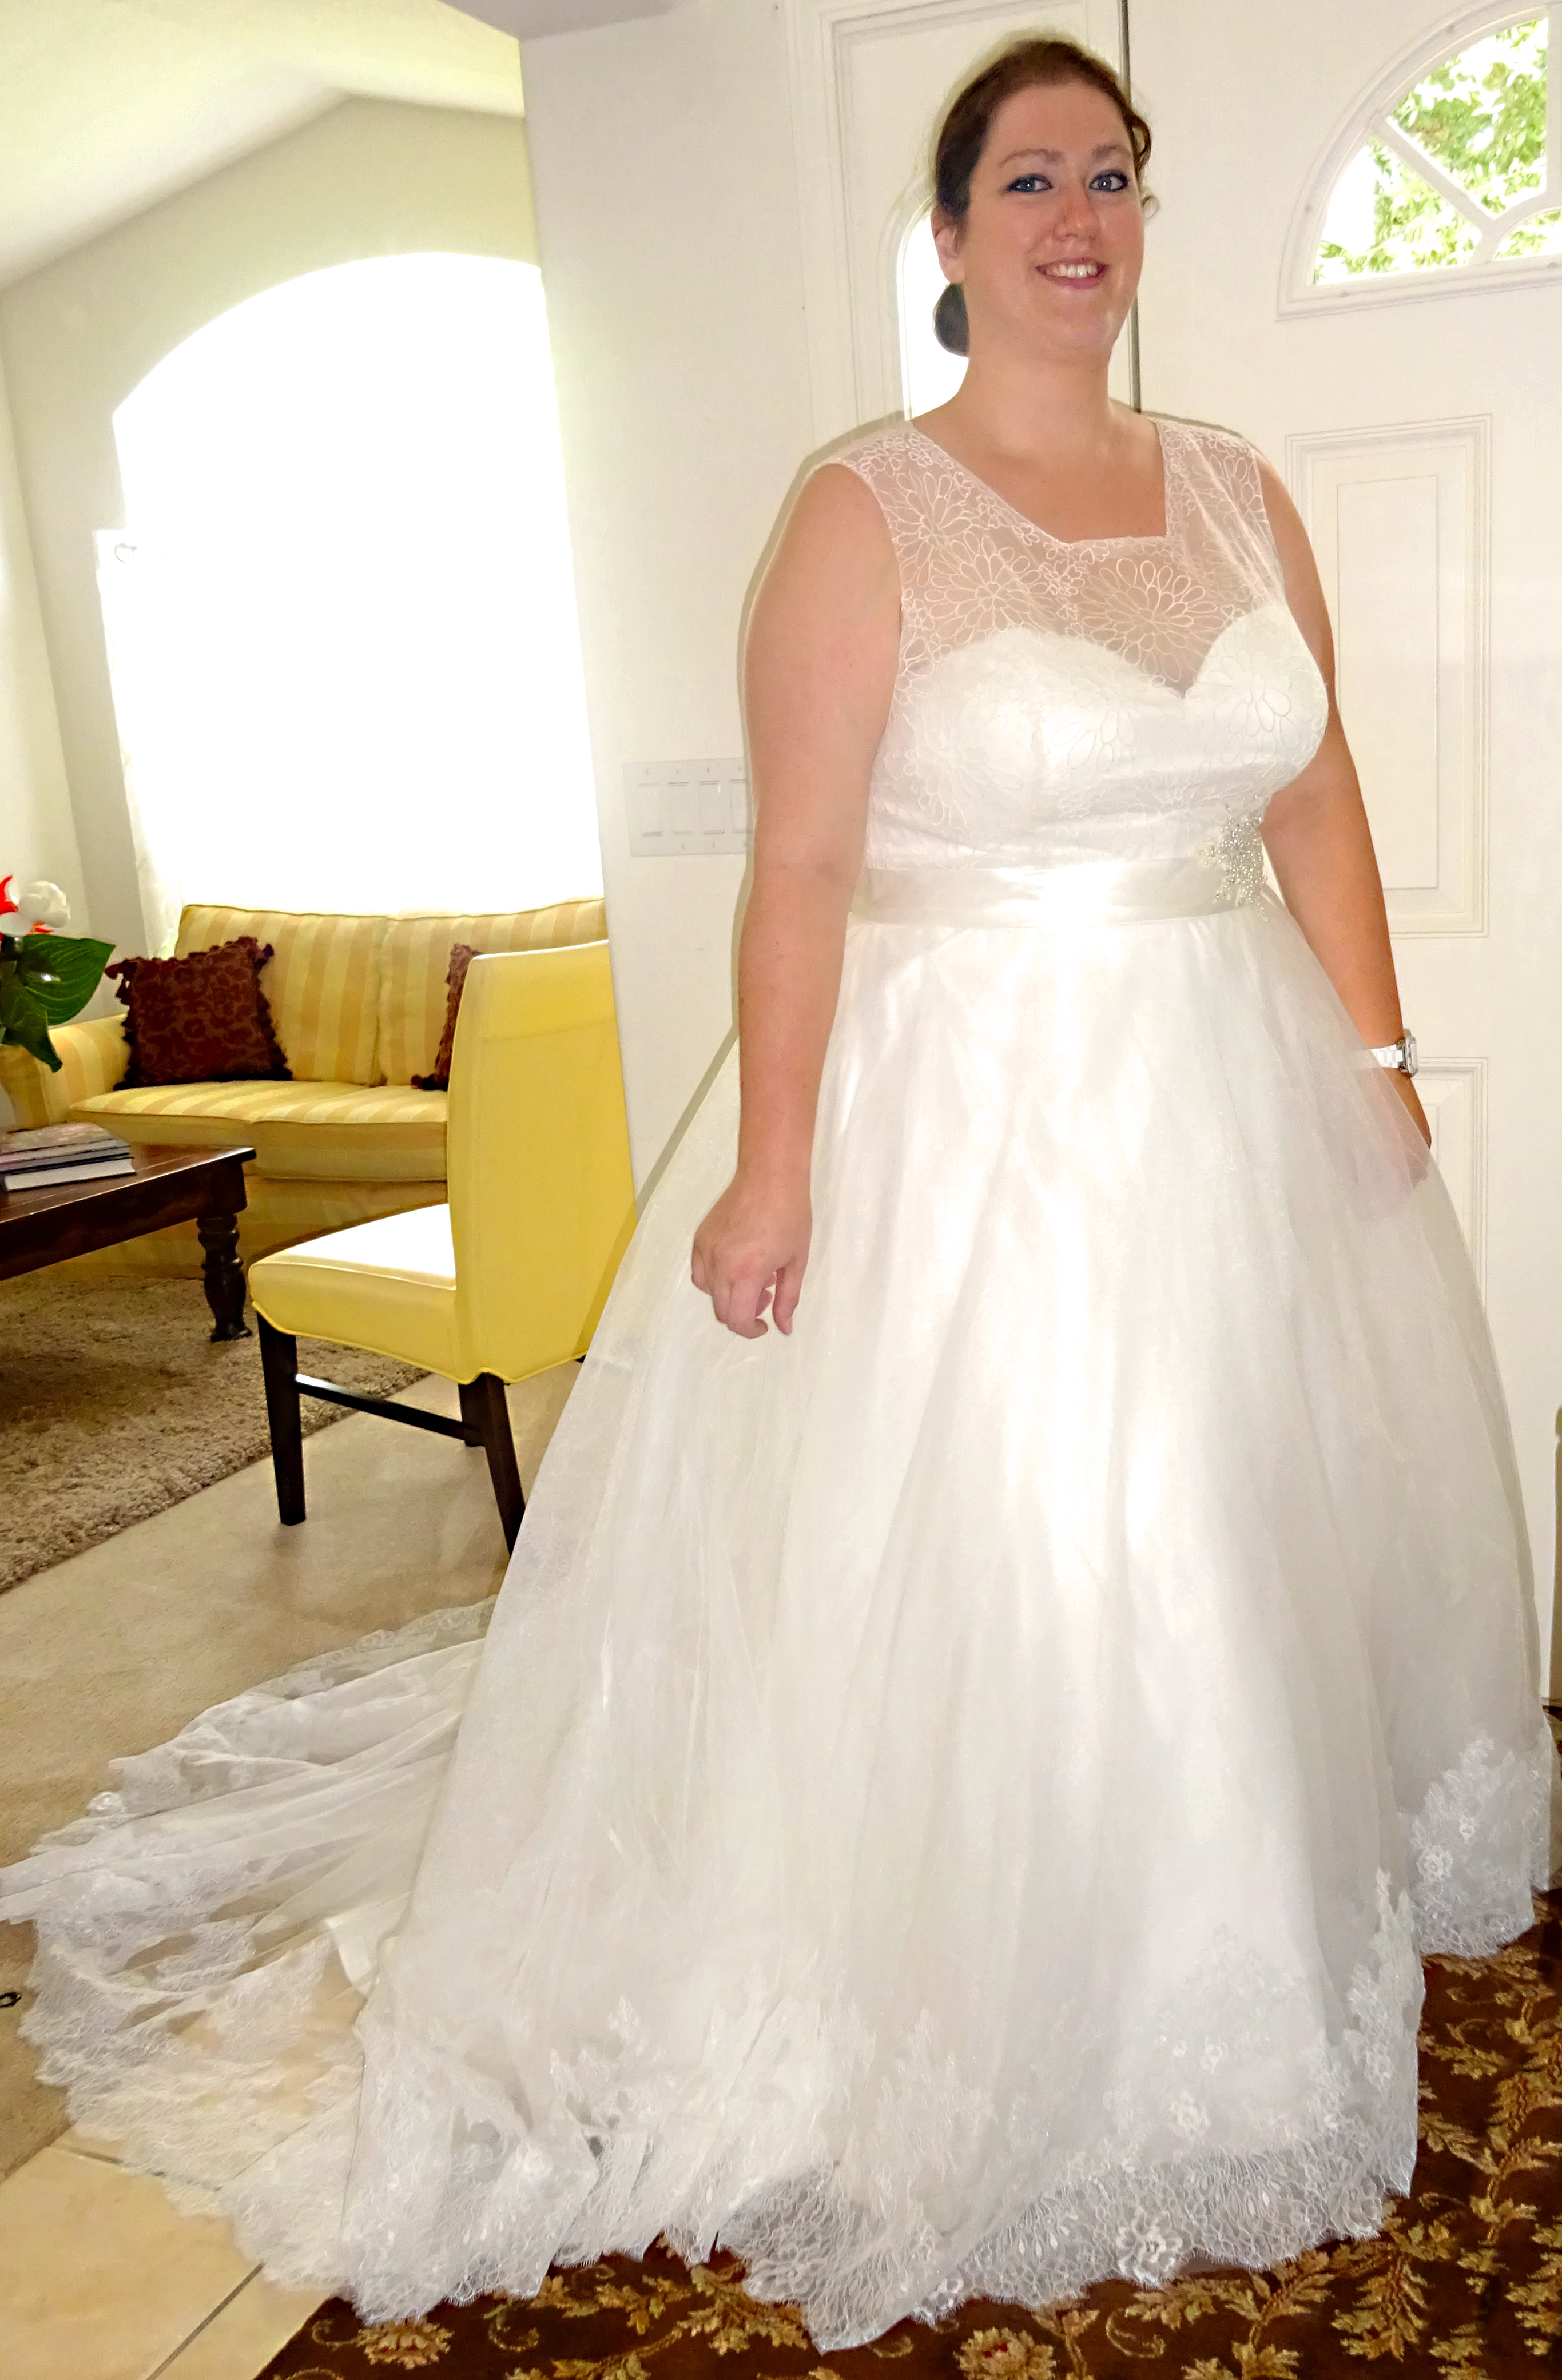 Jessica Foltz Wedding Dress Front Smiling - Needles and Stitches